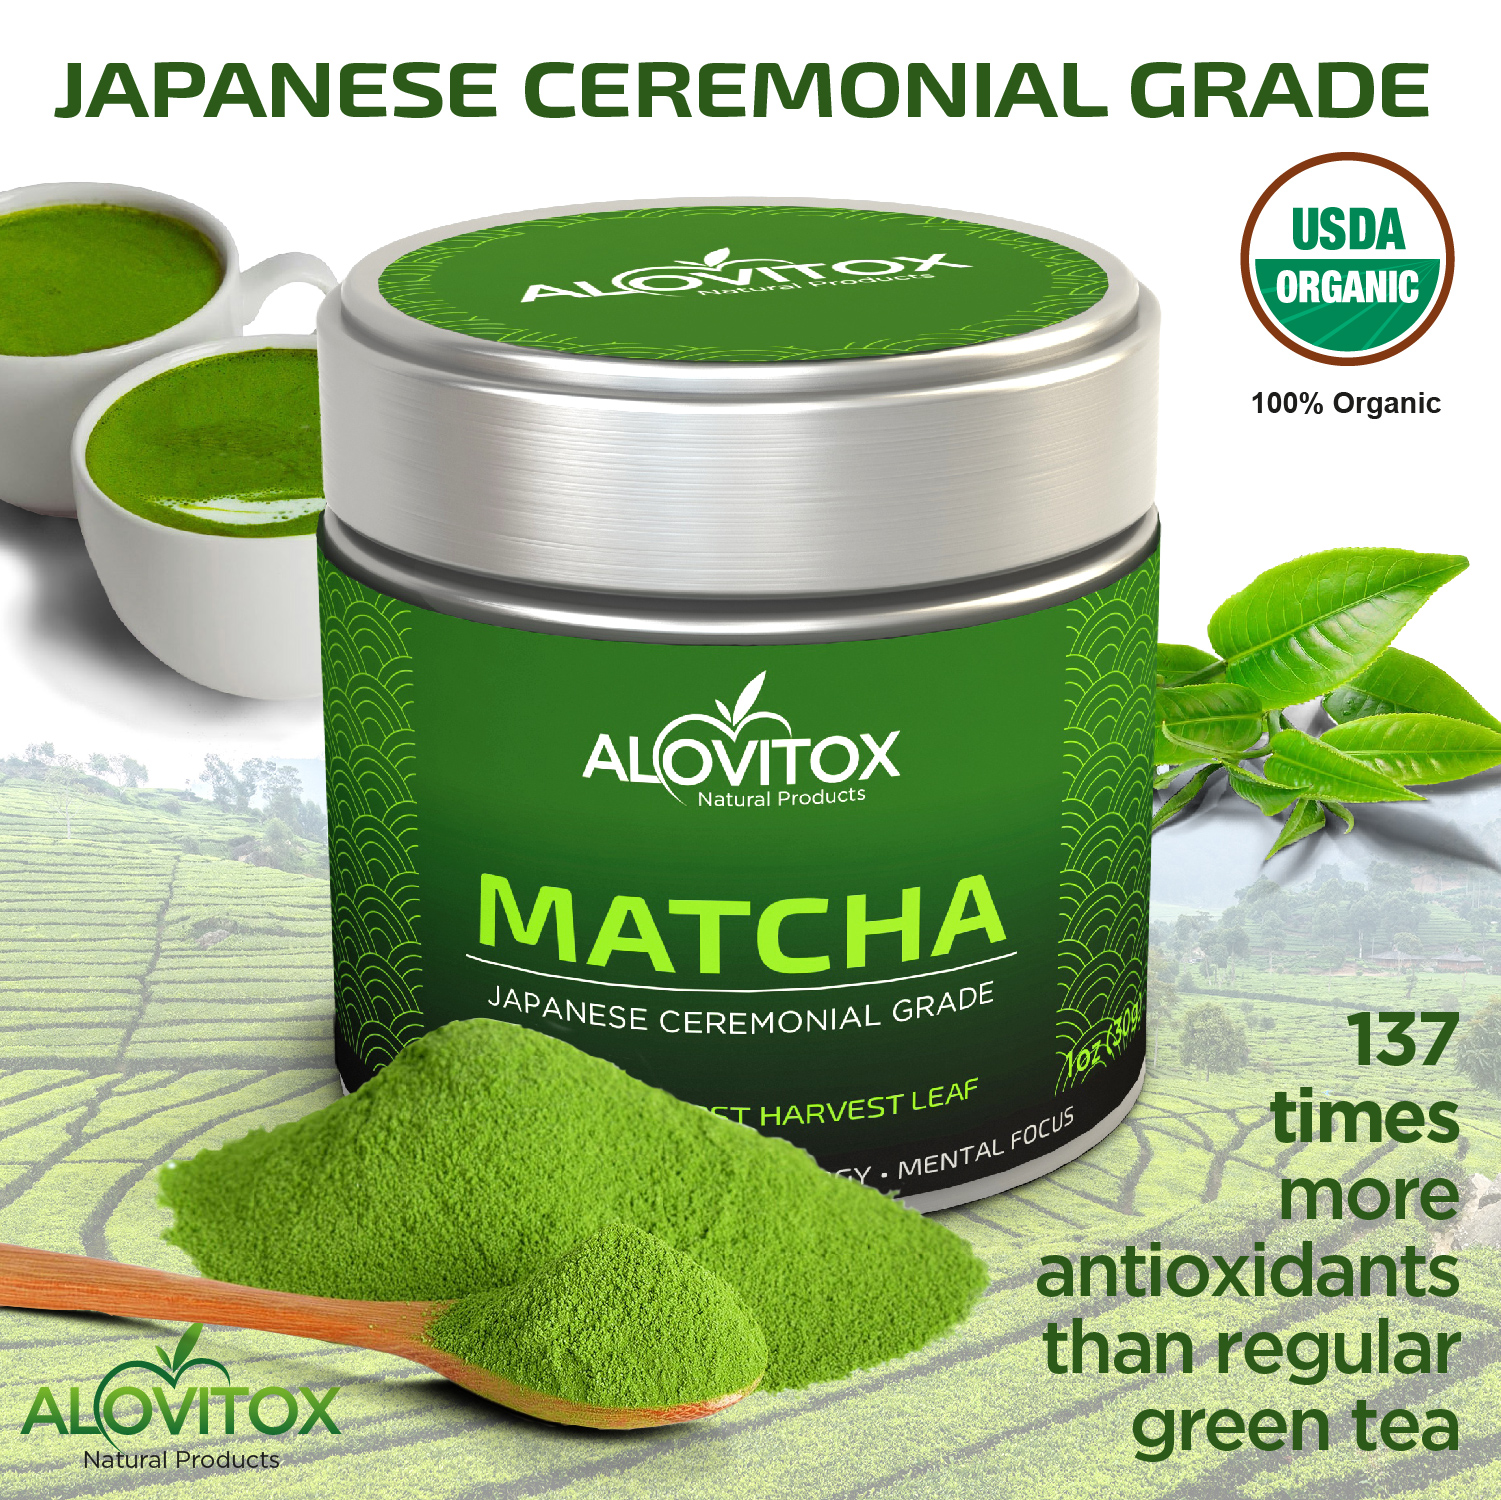 Alovitox Matcha Green Tea Powder, Premium Japanese First Harvest Ceremonial Grade, 100% Organic, use for Back to School Focus, and in Smoothies, Lattes, & Recipes for Energy, 1oz Can